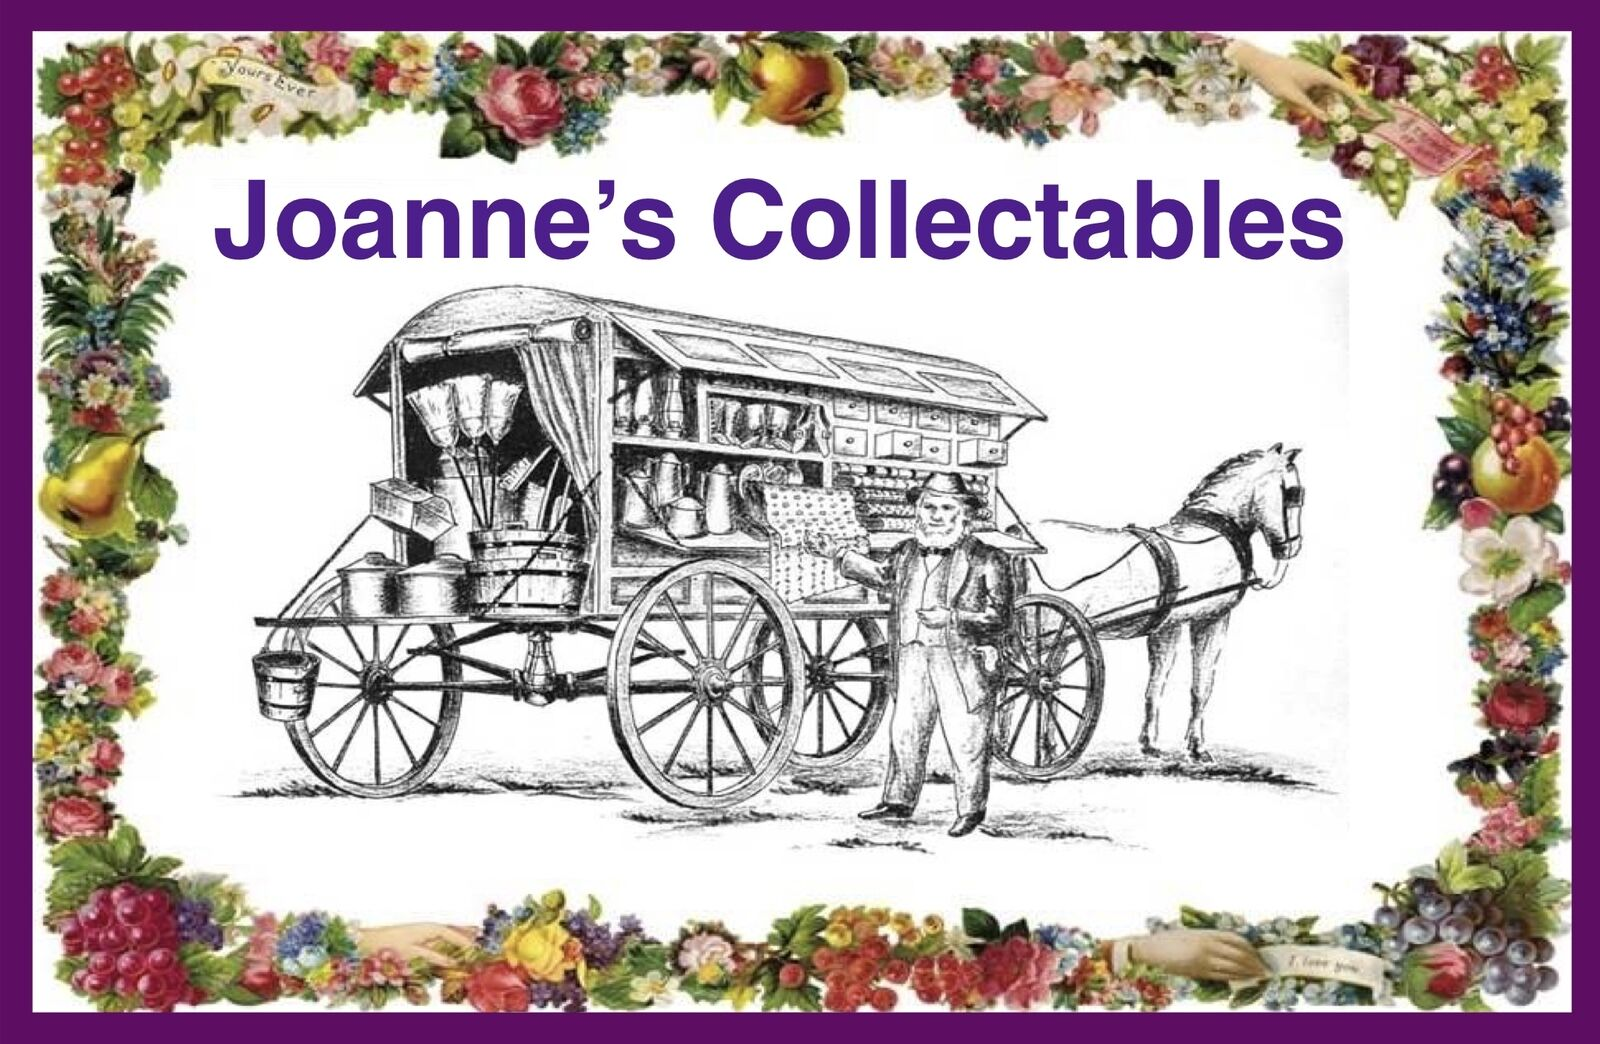 Joanne's Collectables